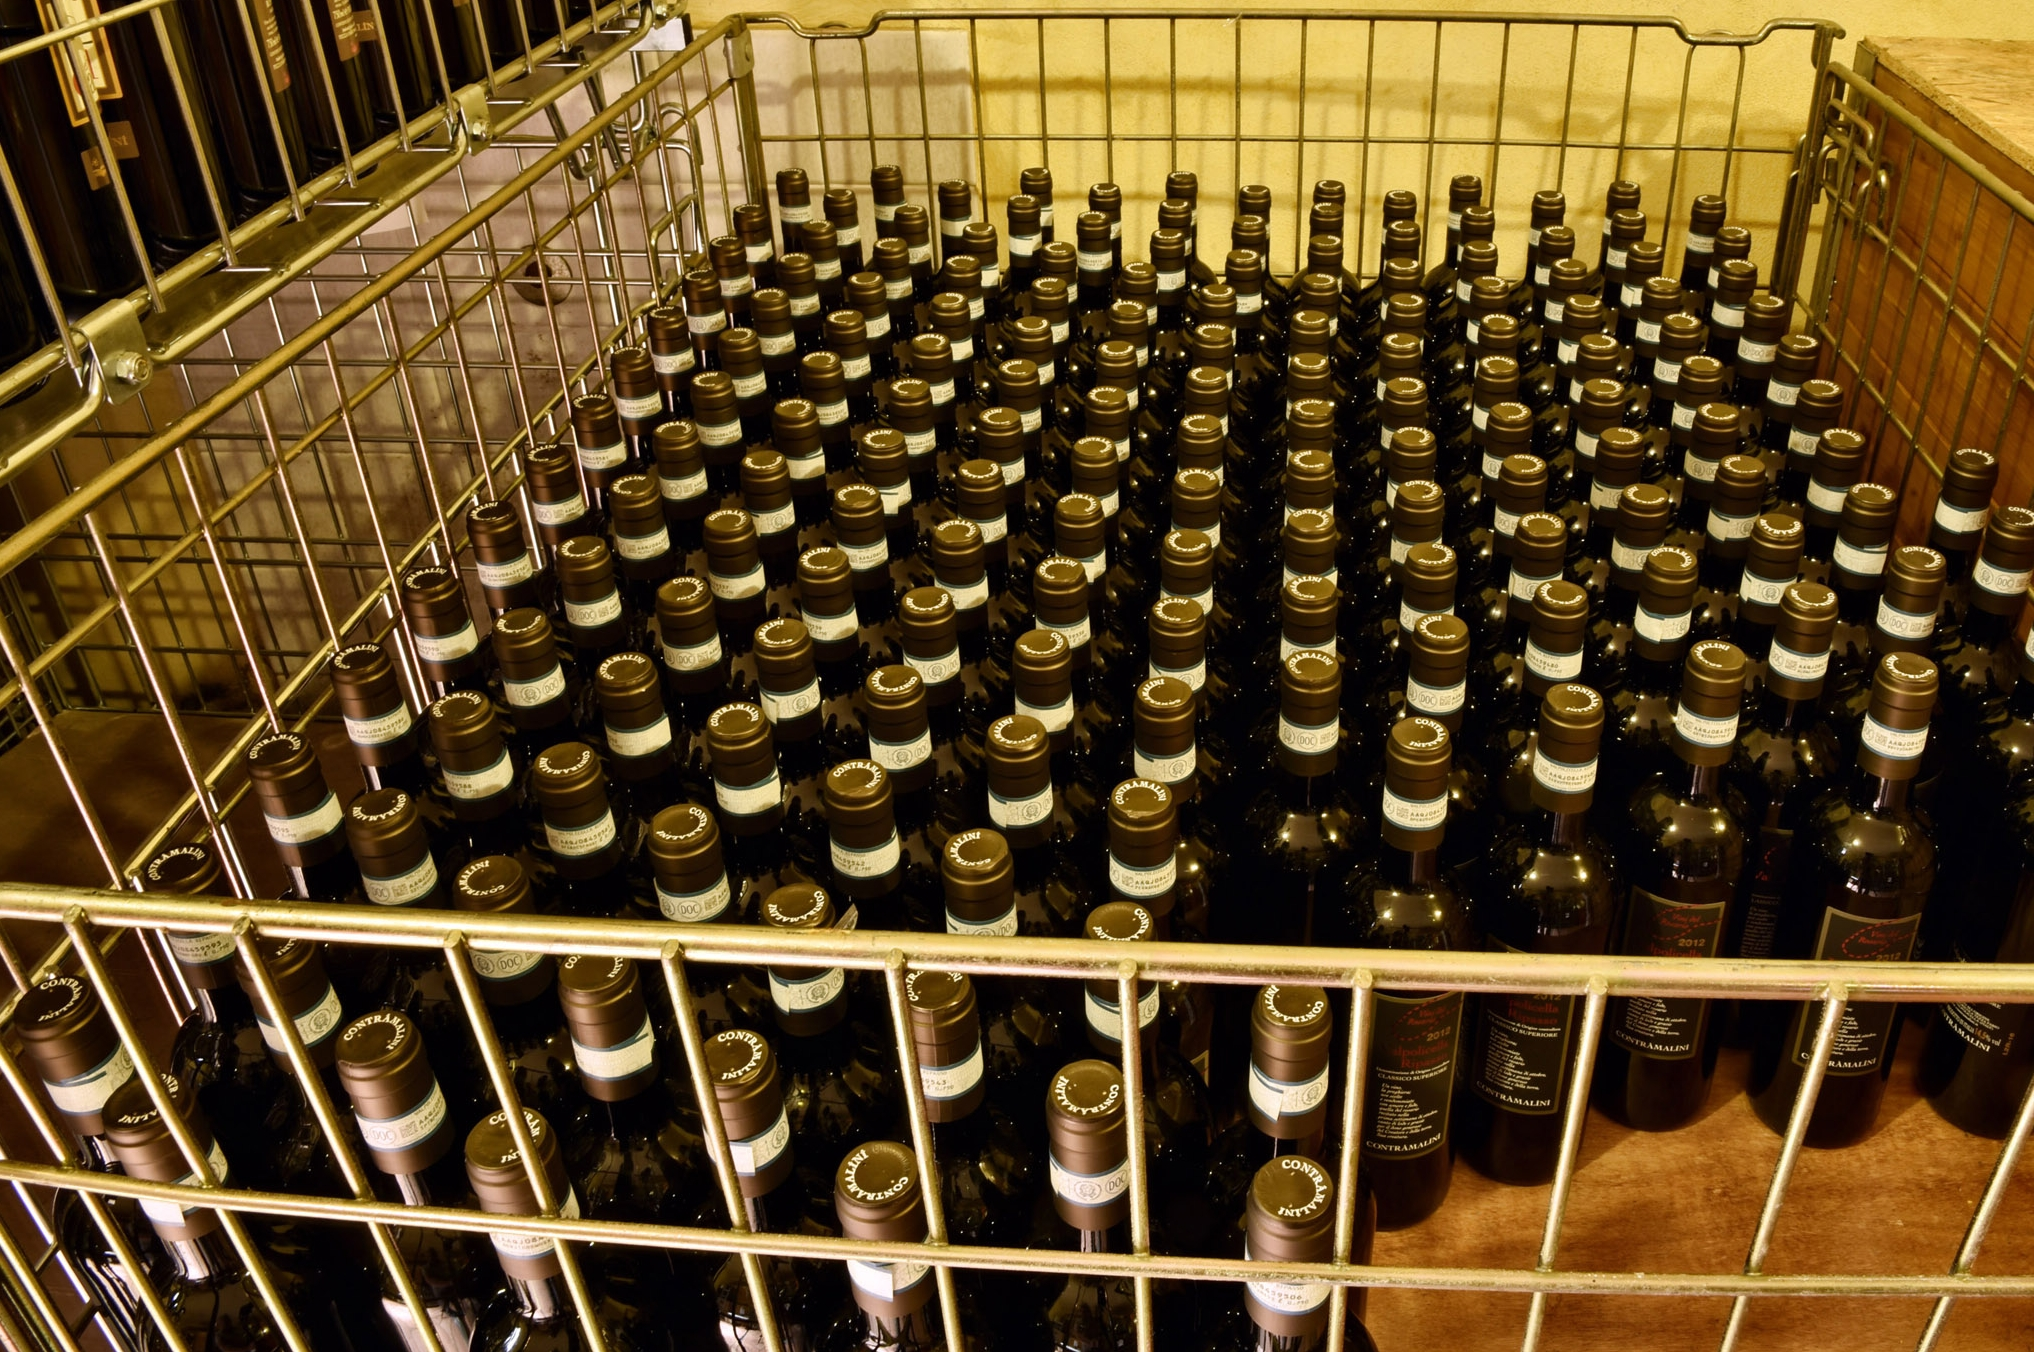 Wine aging in the bottles